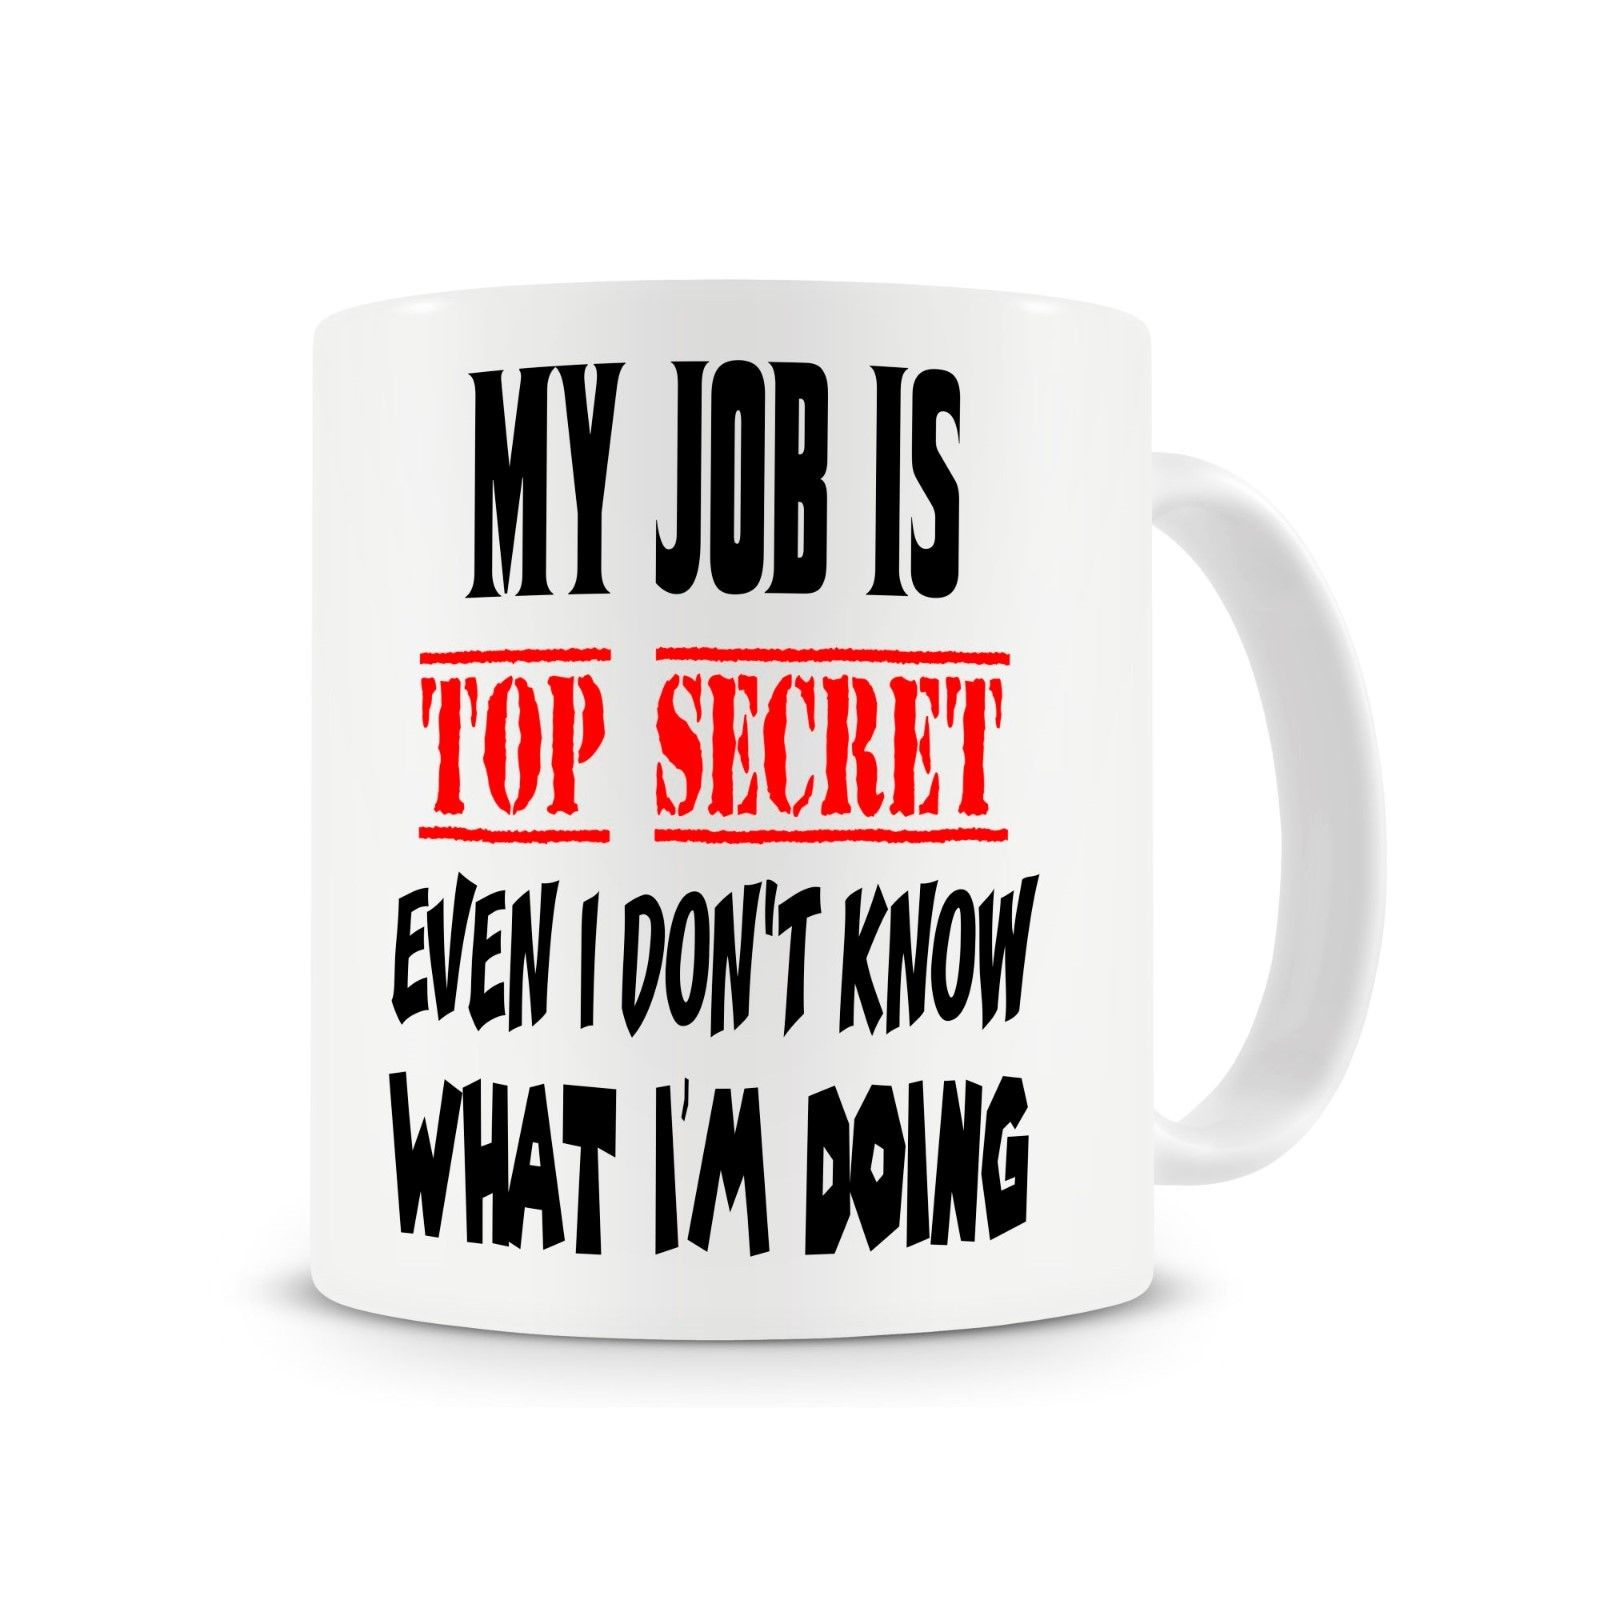 Funny Work Mugs My Job Is Top Secret Office Mug Funny Coffee Mugs Work Mug Cup With Stirring Spoon Gift For Him Work